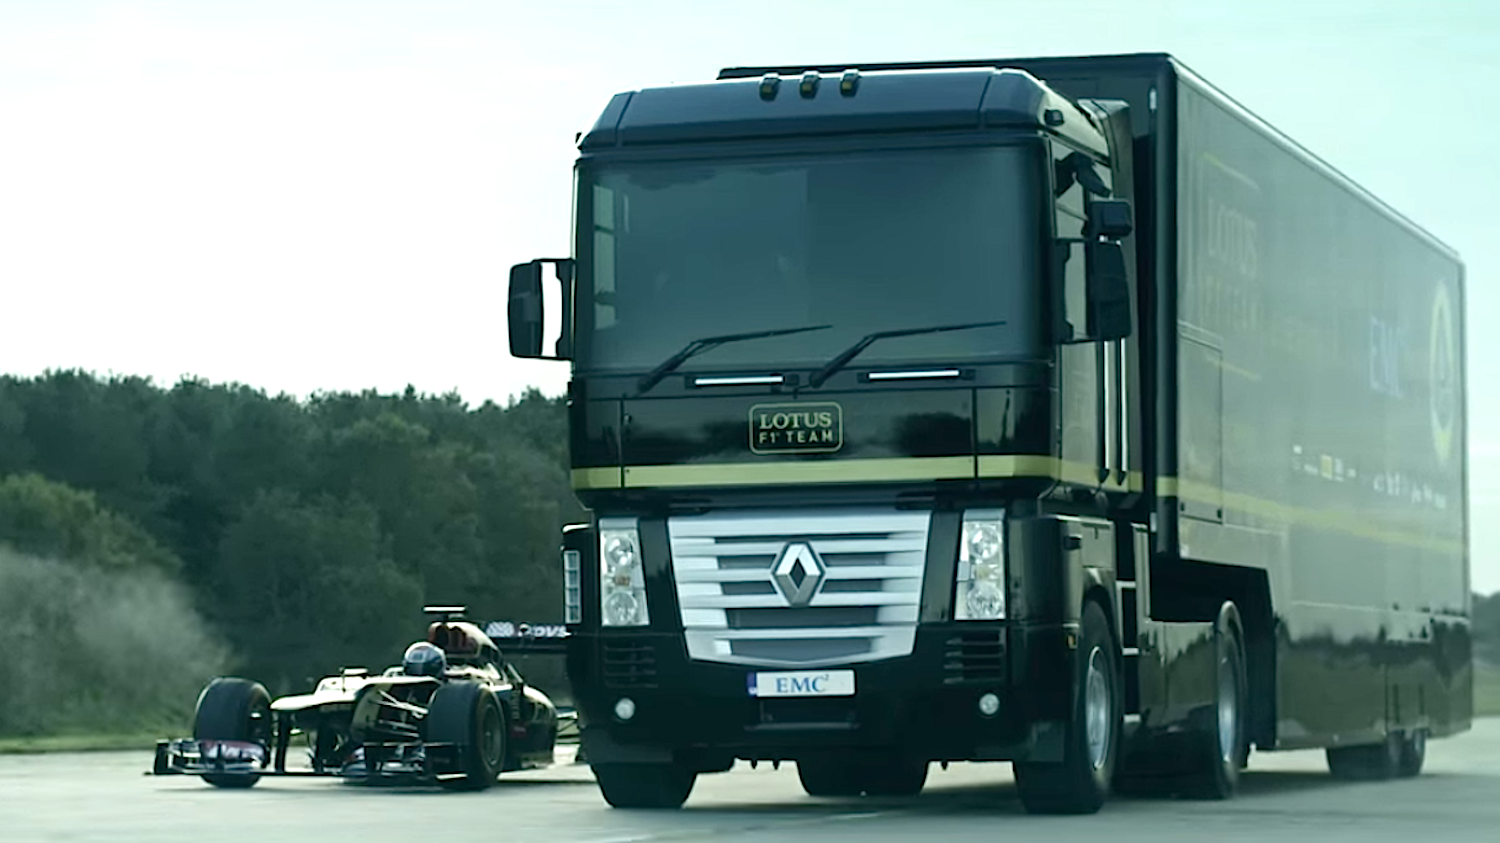 Lkw und Formel-1-Wagen rasten mit 112 km/h auf die Rampe zu. Am Steuer des Lkw saß Hollywood-Stuntfahrer Mike Ryan – bekannt aus der Filmreihe The Fast and the Furious.